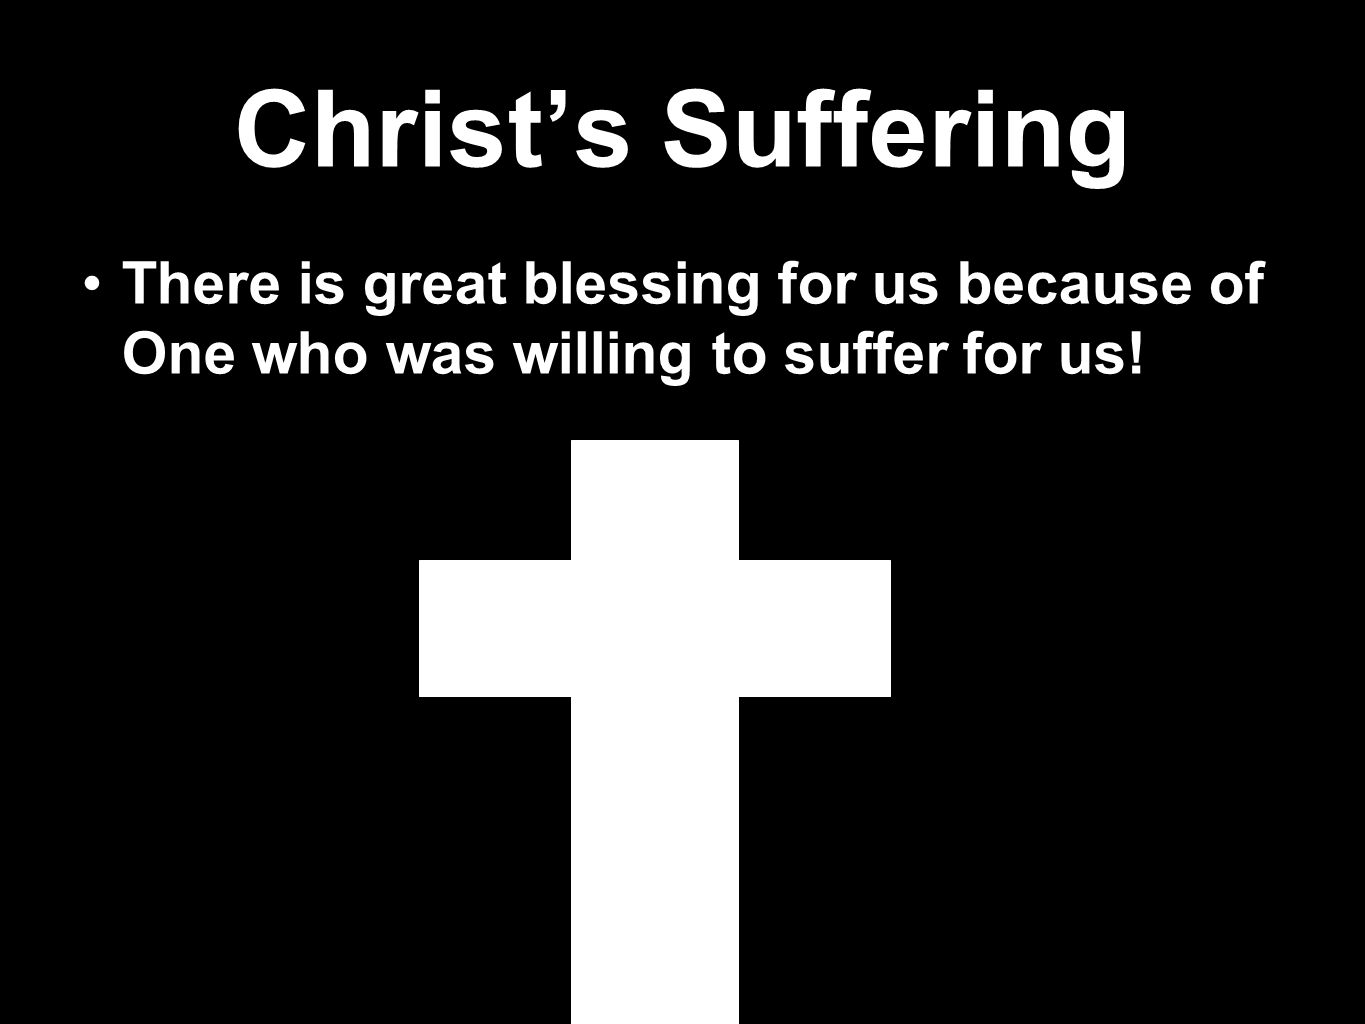 Christ's Suffering There is great blessing for us because of One who was willing to suffer for us!